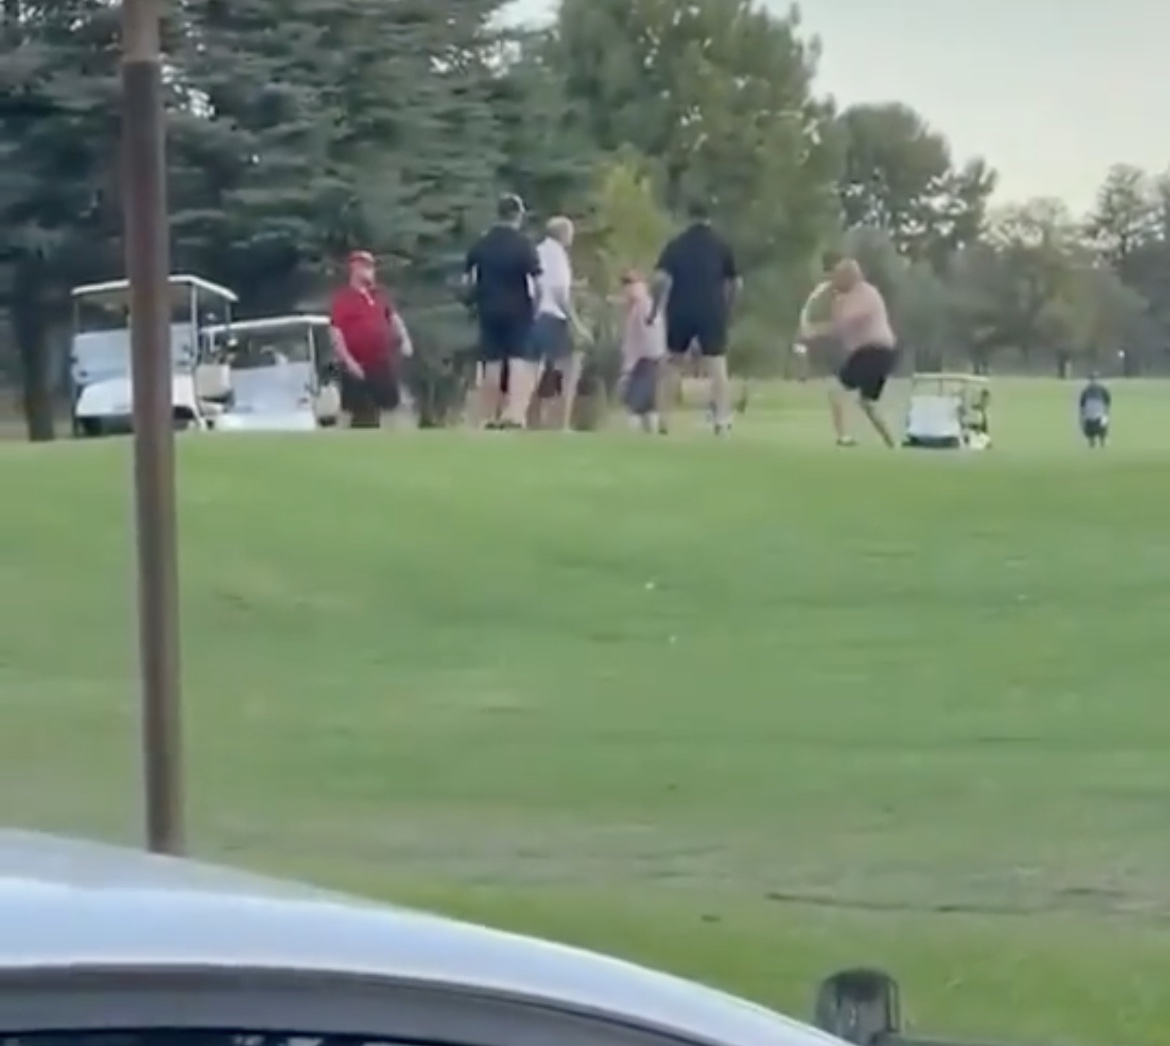 (Video) Golf Course Fight With A Flag Used As A Weapon